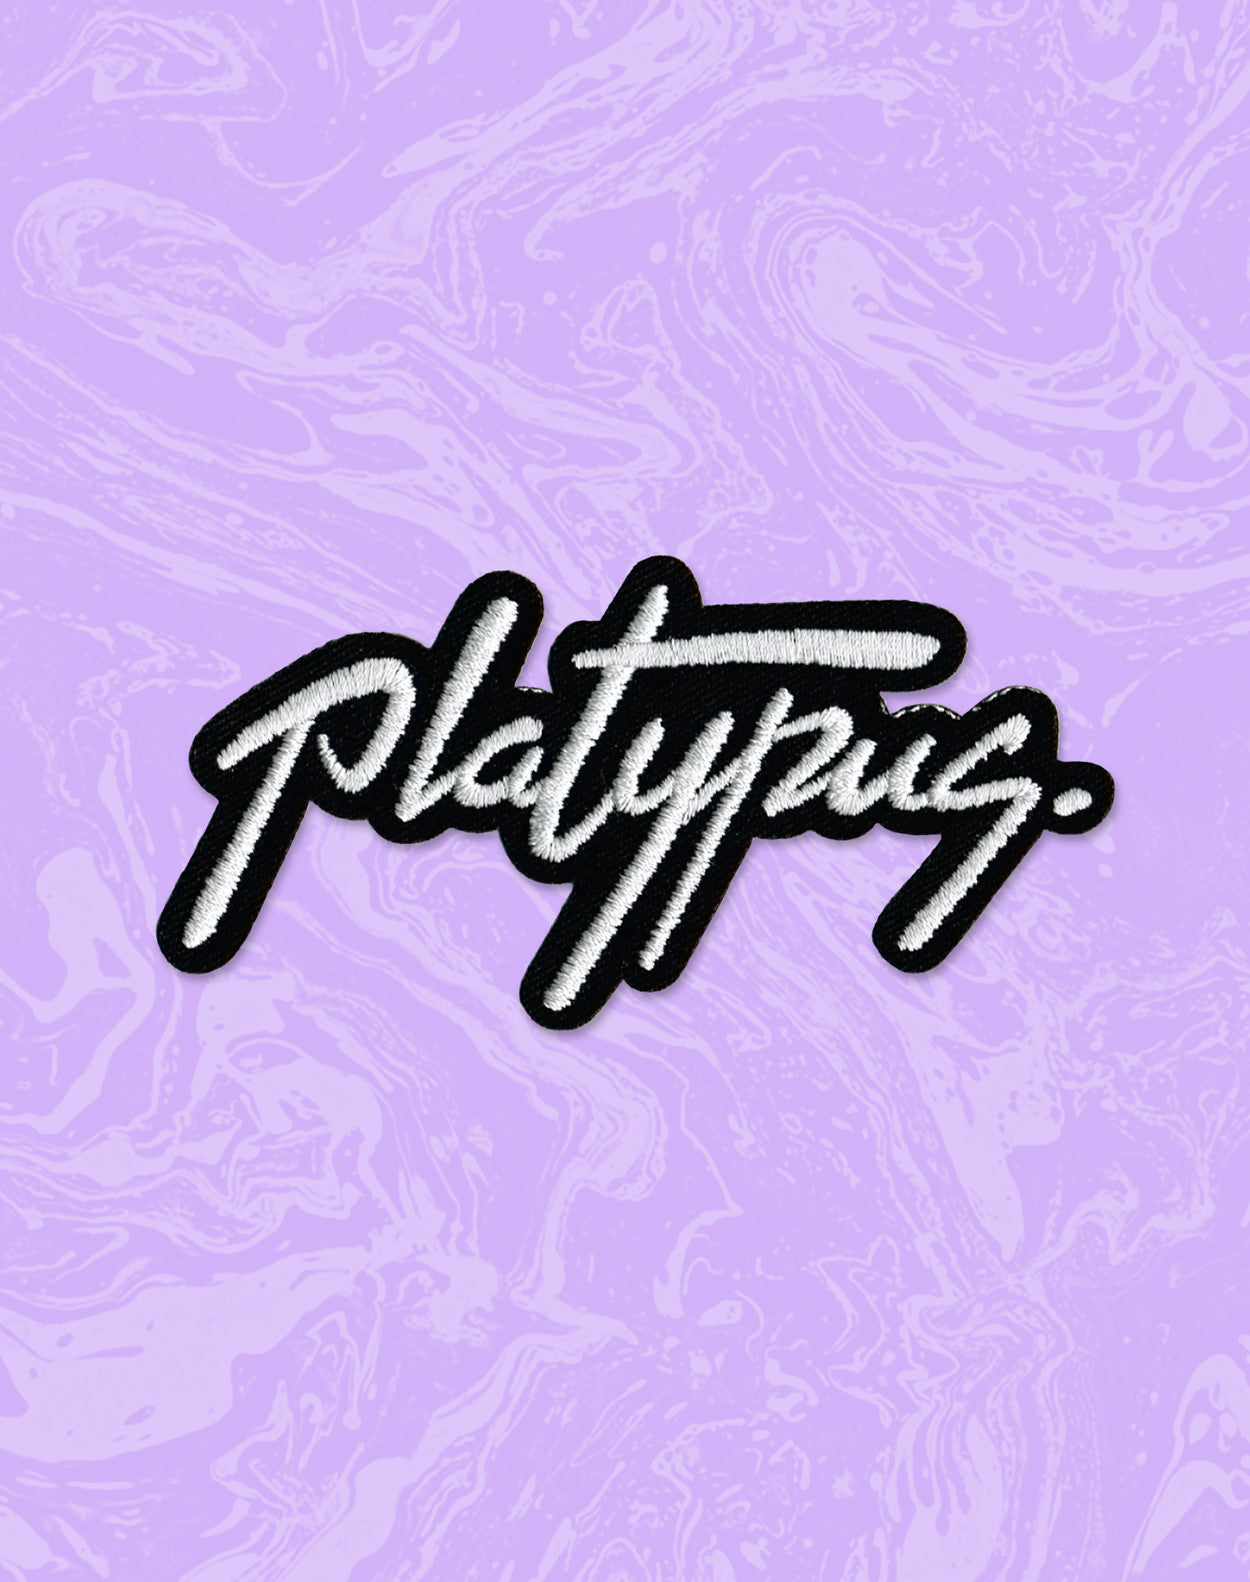 The Classic Platypus Signiture Design DIY Iron-on Patch by Platypus UK Streetwear